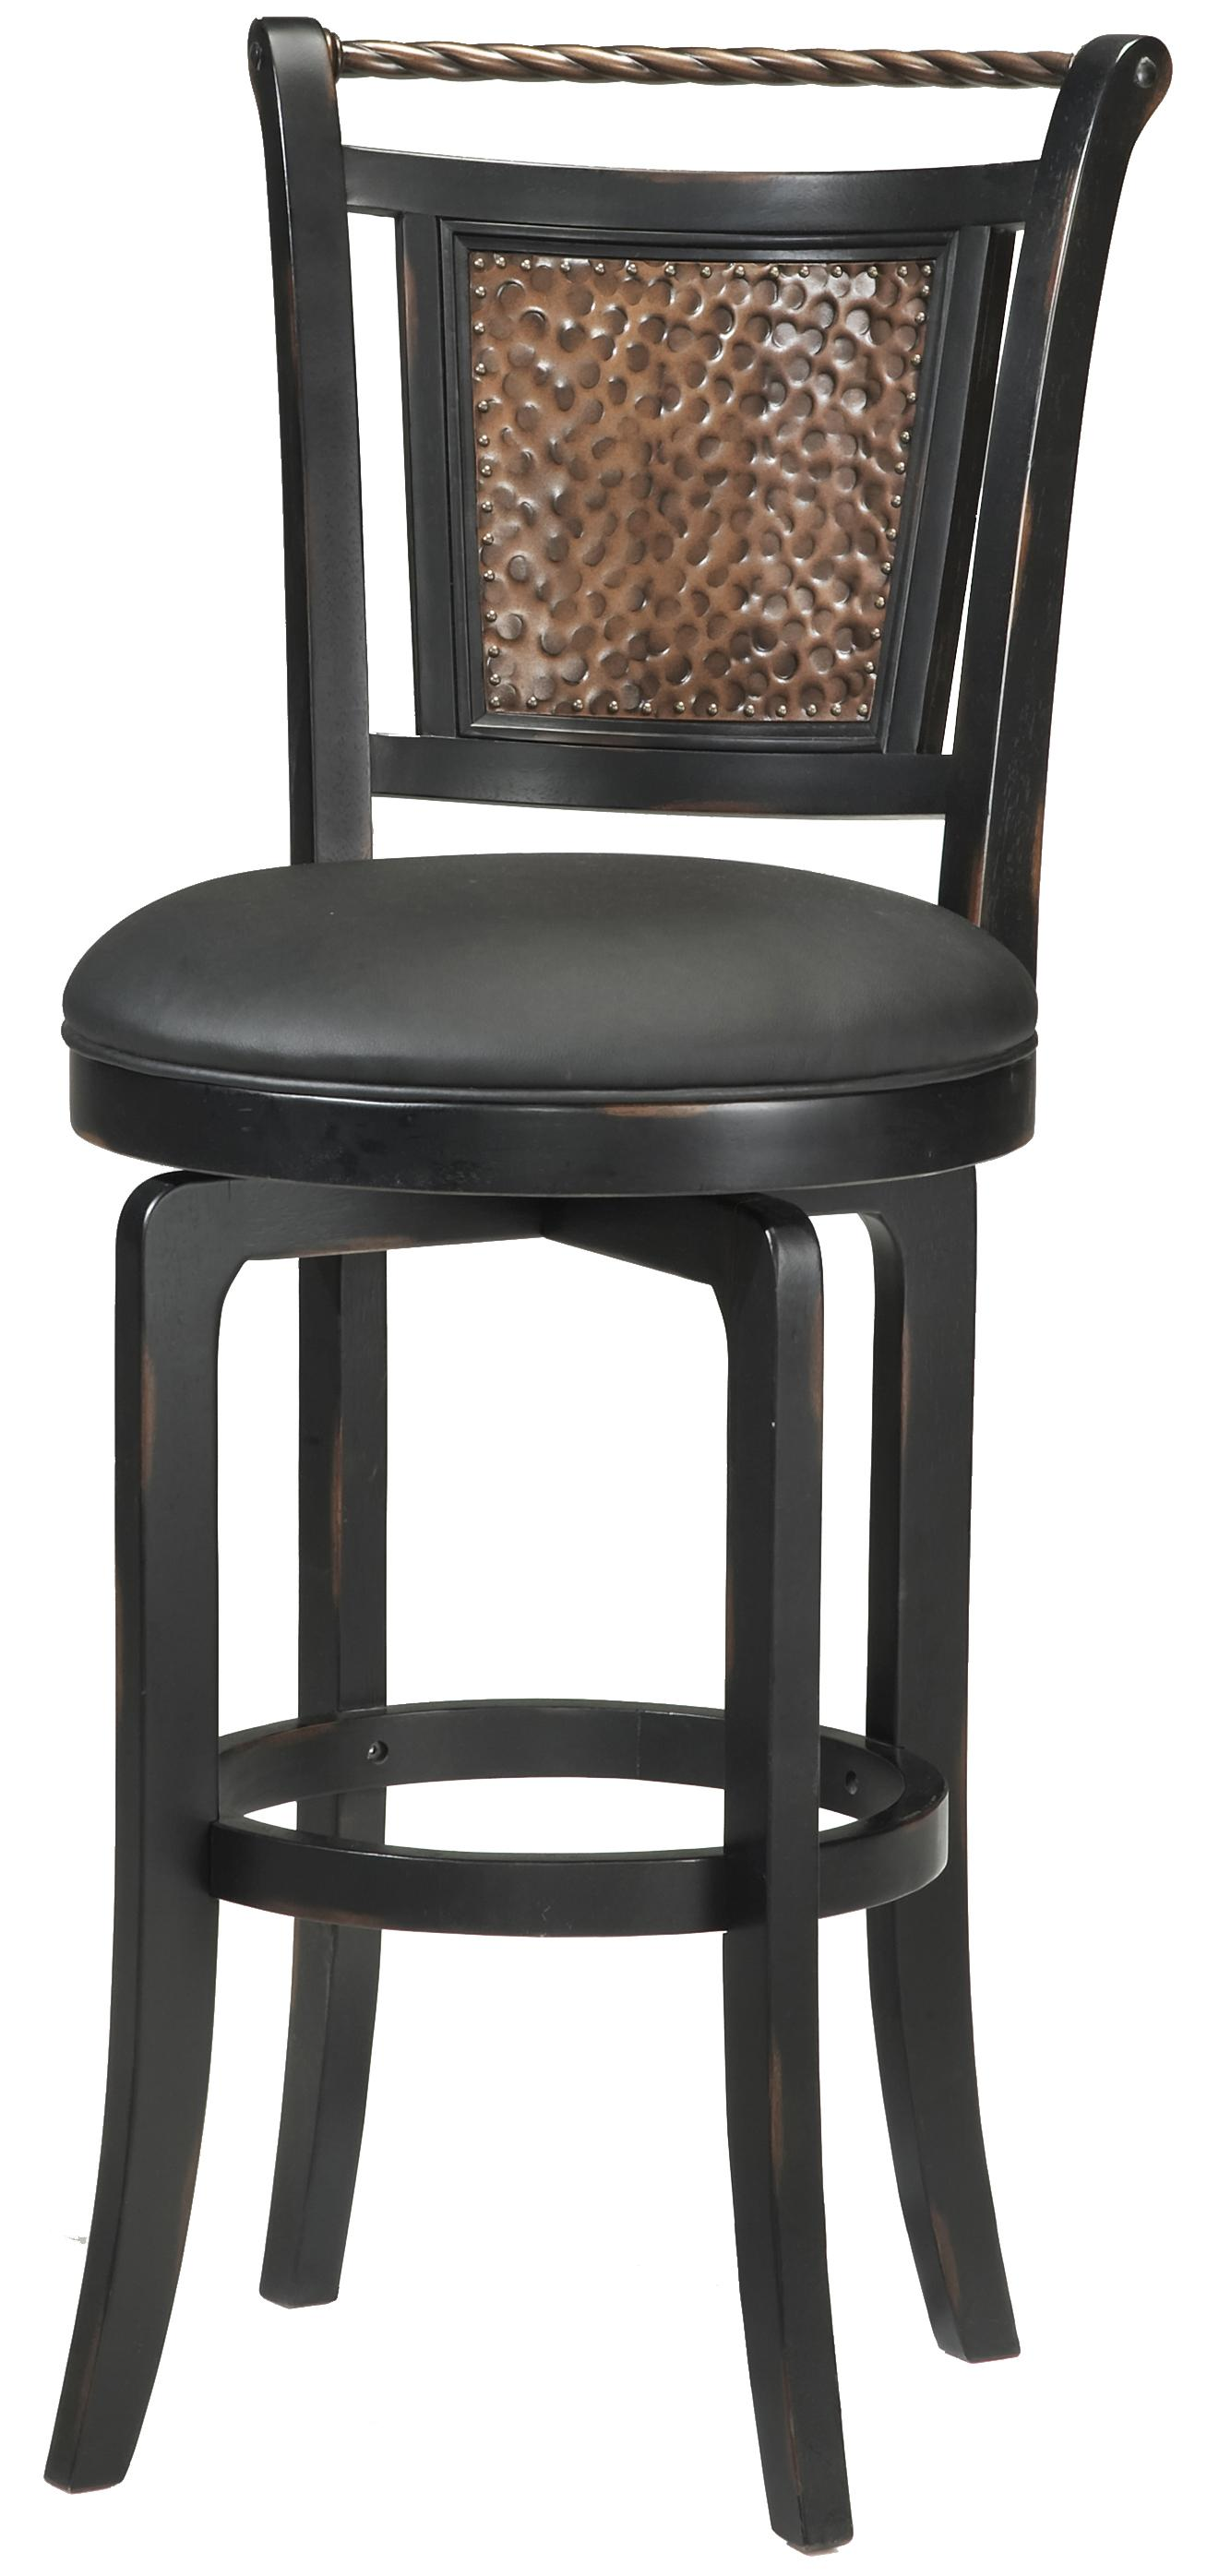 wood stools 26 5 counter height norwood swivel stool by hillsdale wolf furniture. Black Bedroom Furniture Sets. Home Design Ideas